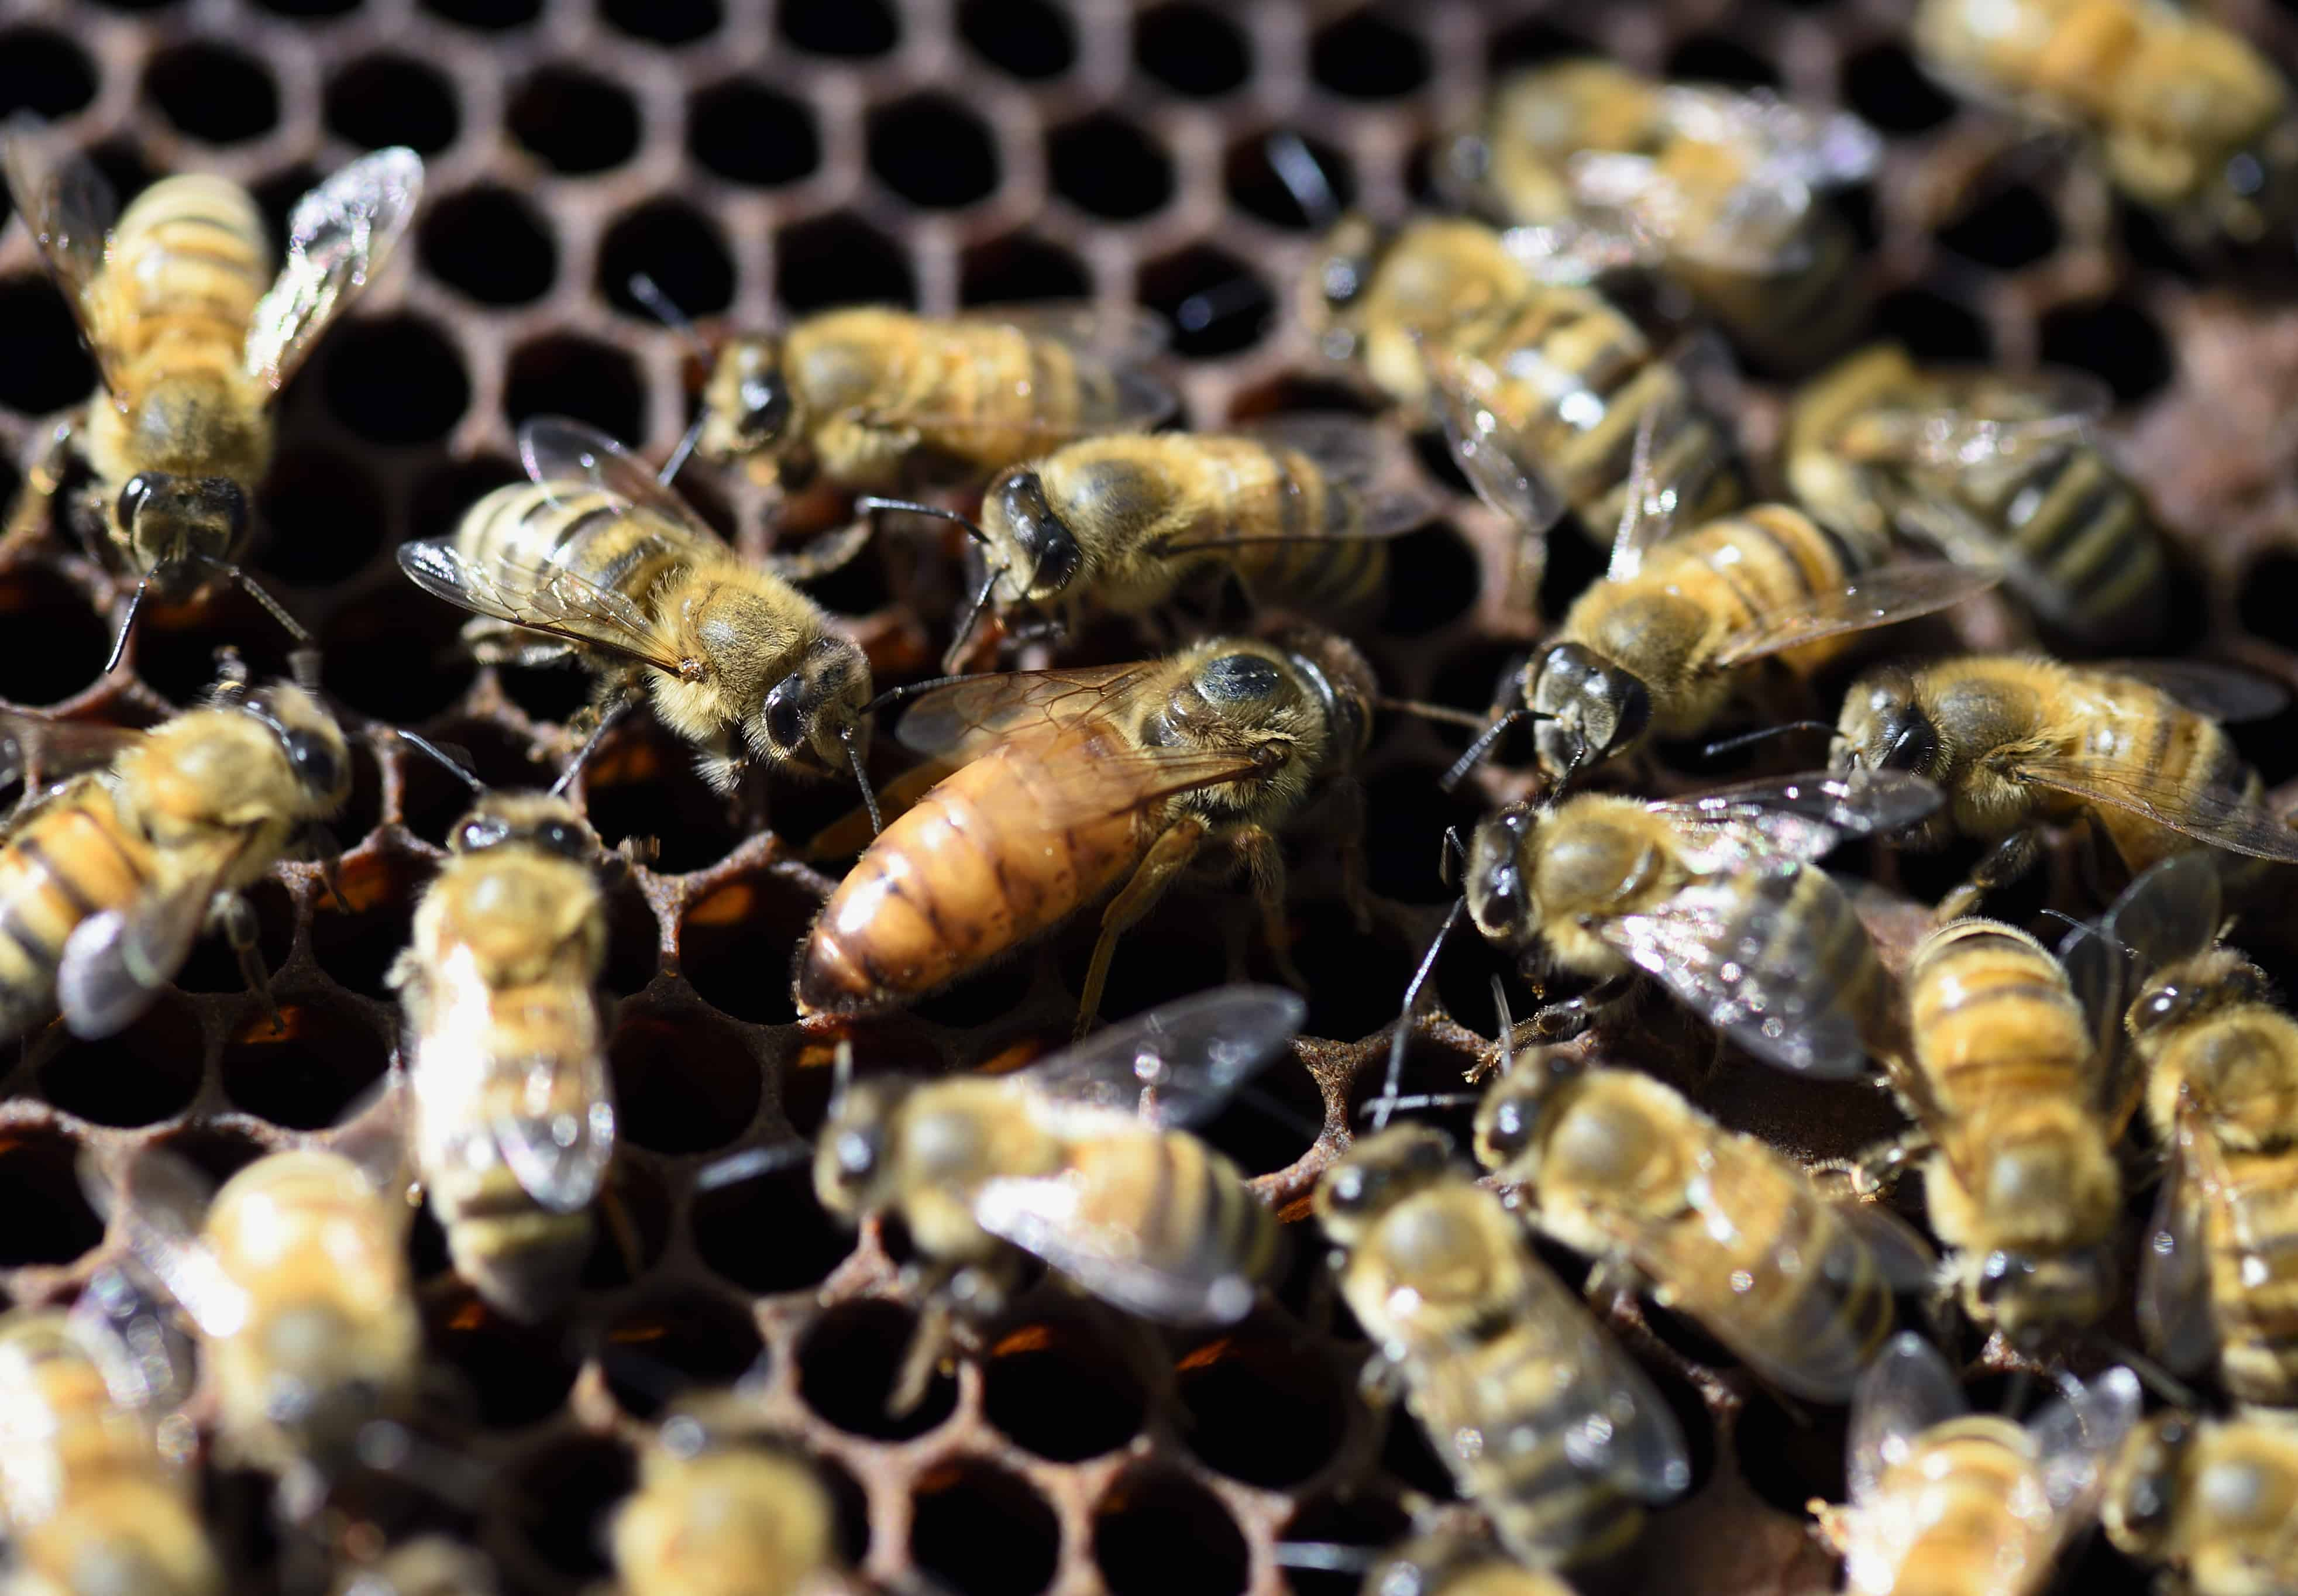 A queen bee is surrounded by bees in a hive at the Luxembourg Gardens' beekeeping school on April 15, 2015 in Paris.